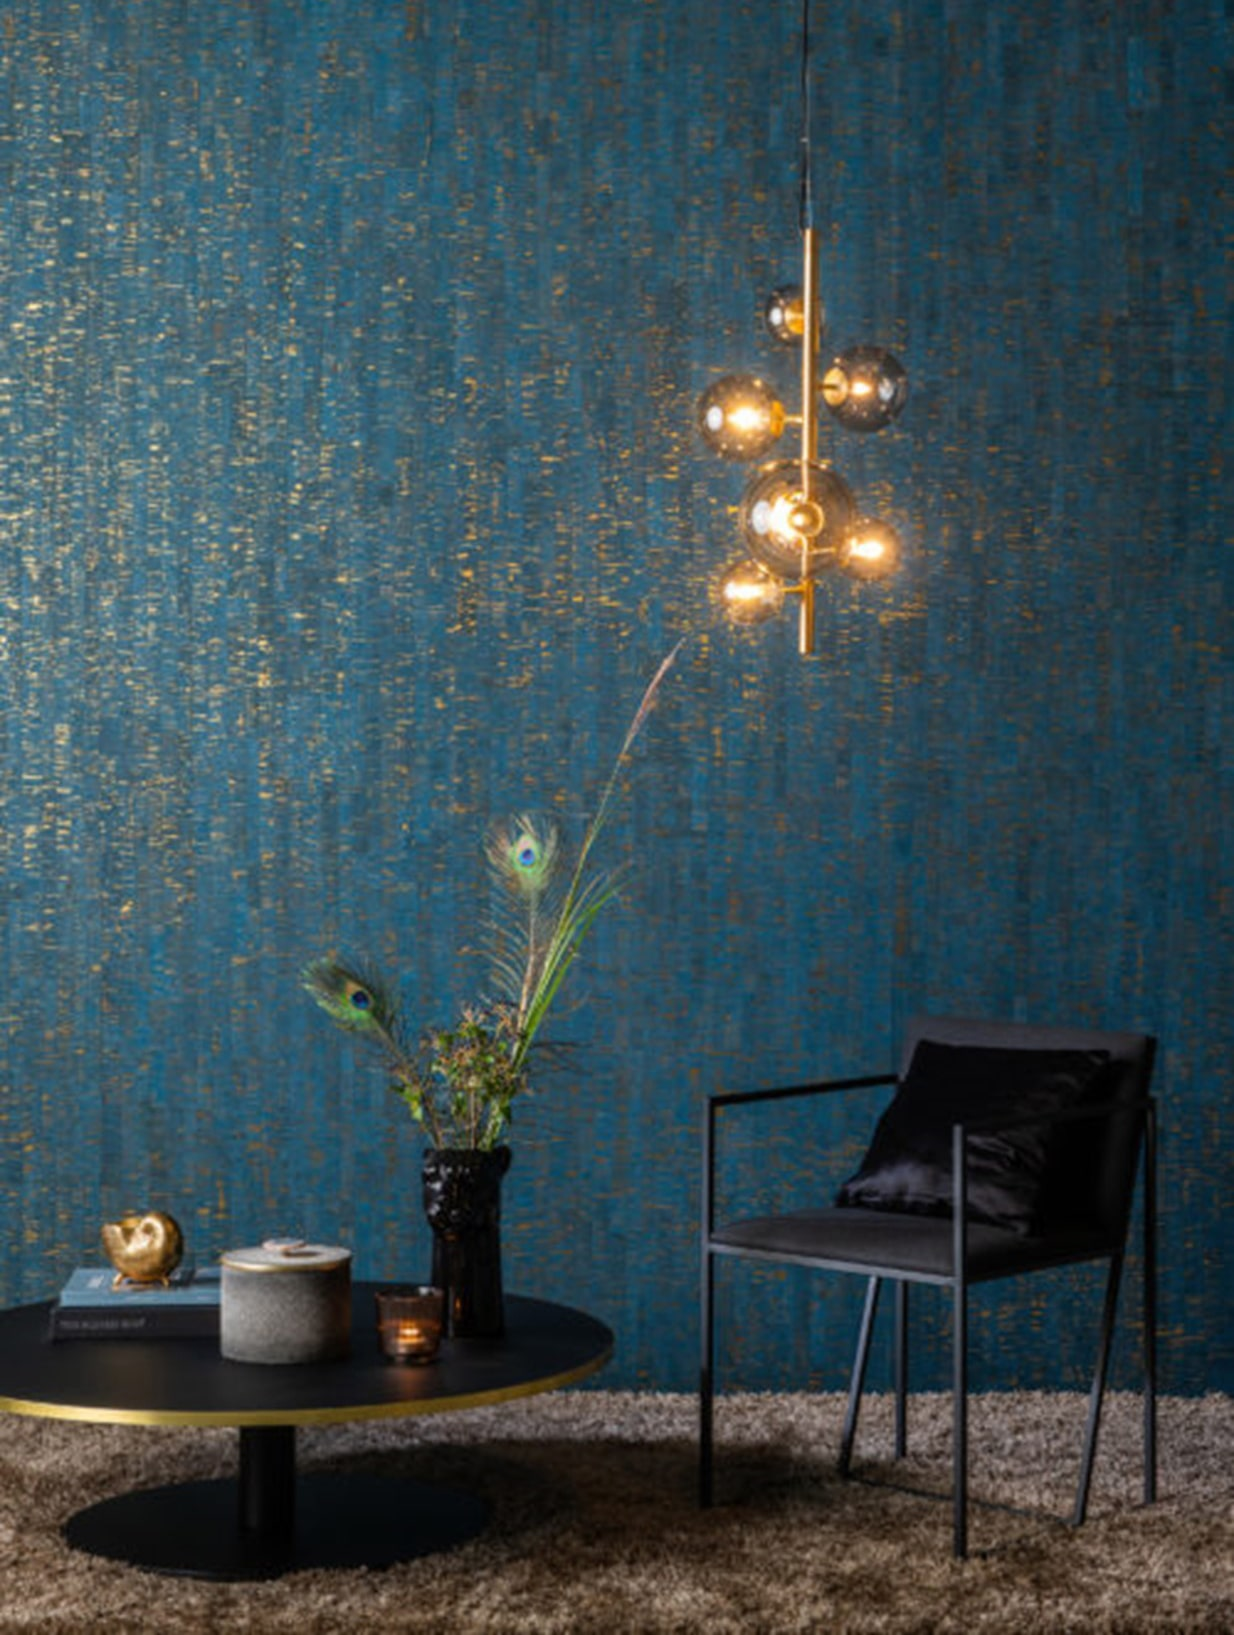 wallcovering has the texture of crushed for paper and feeling of waves